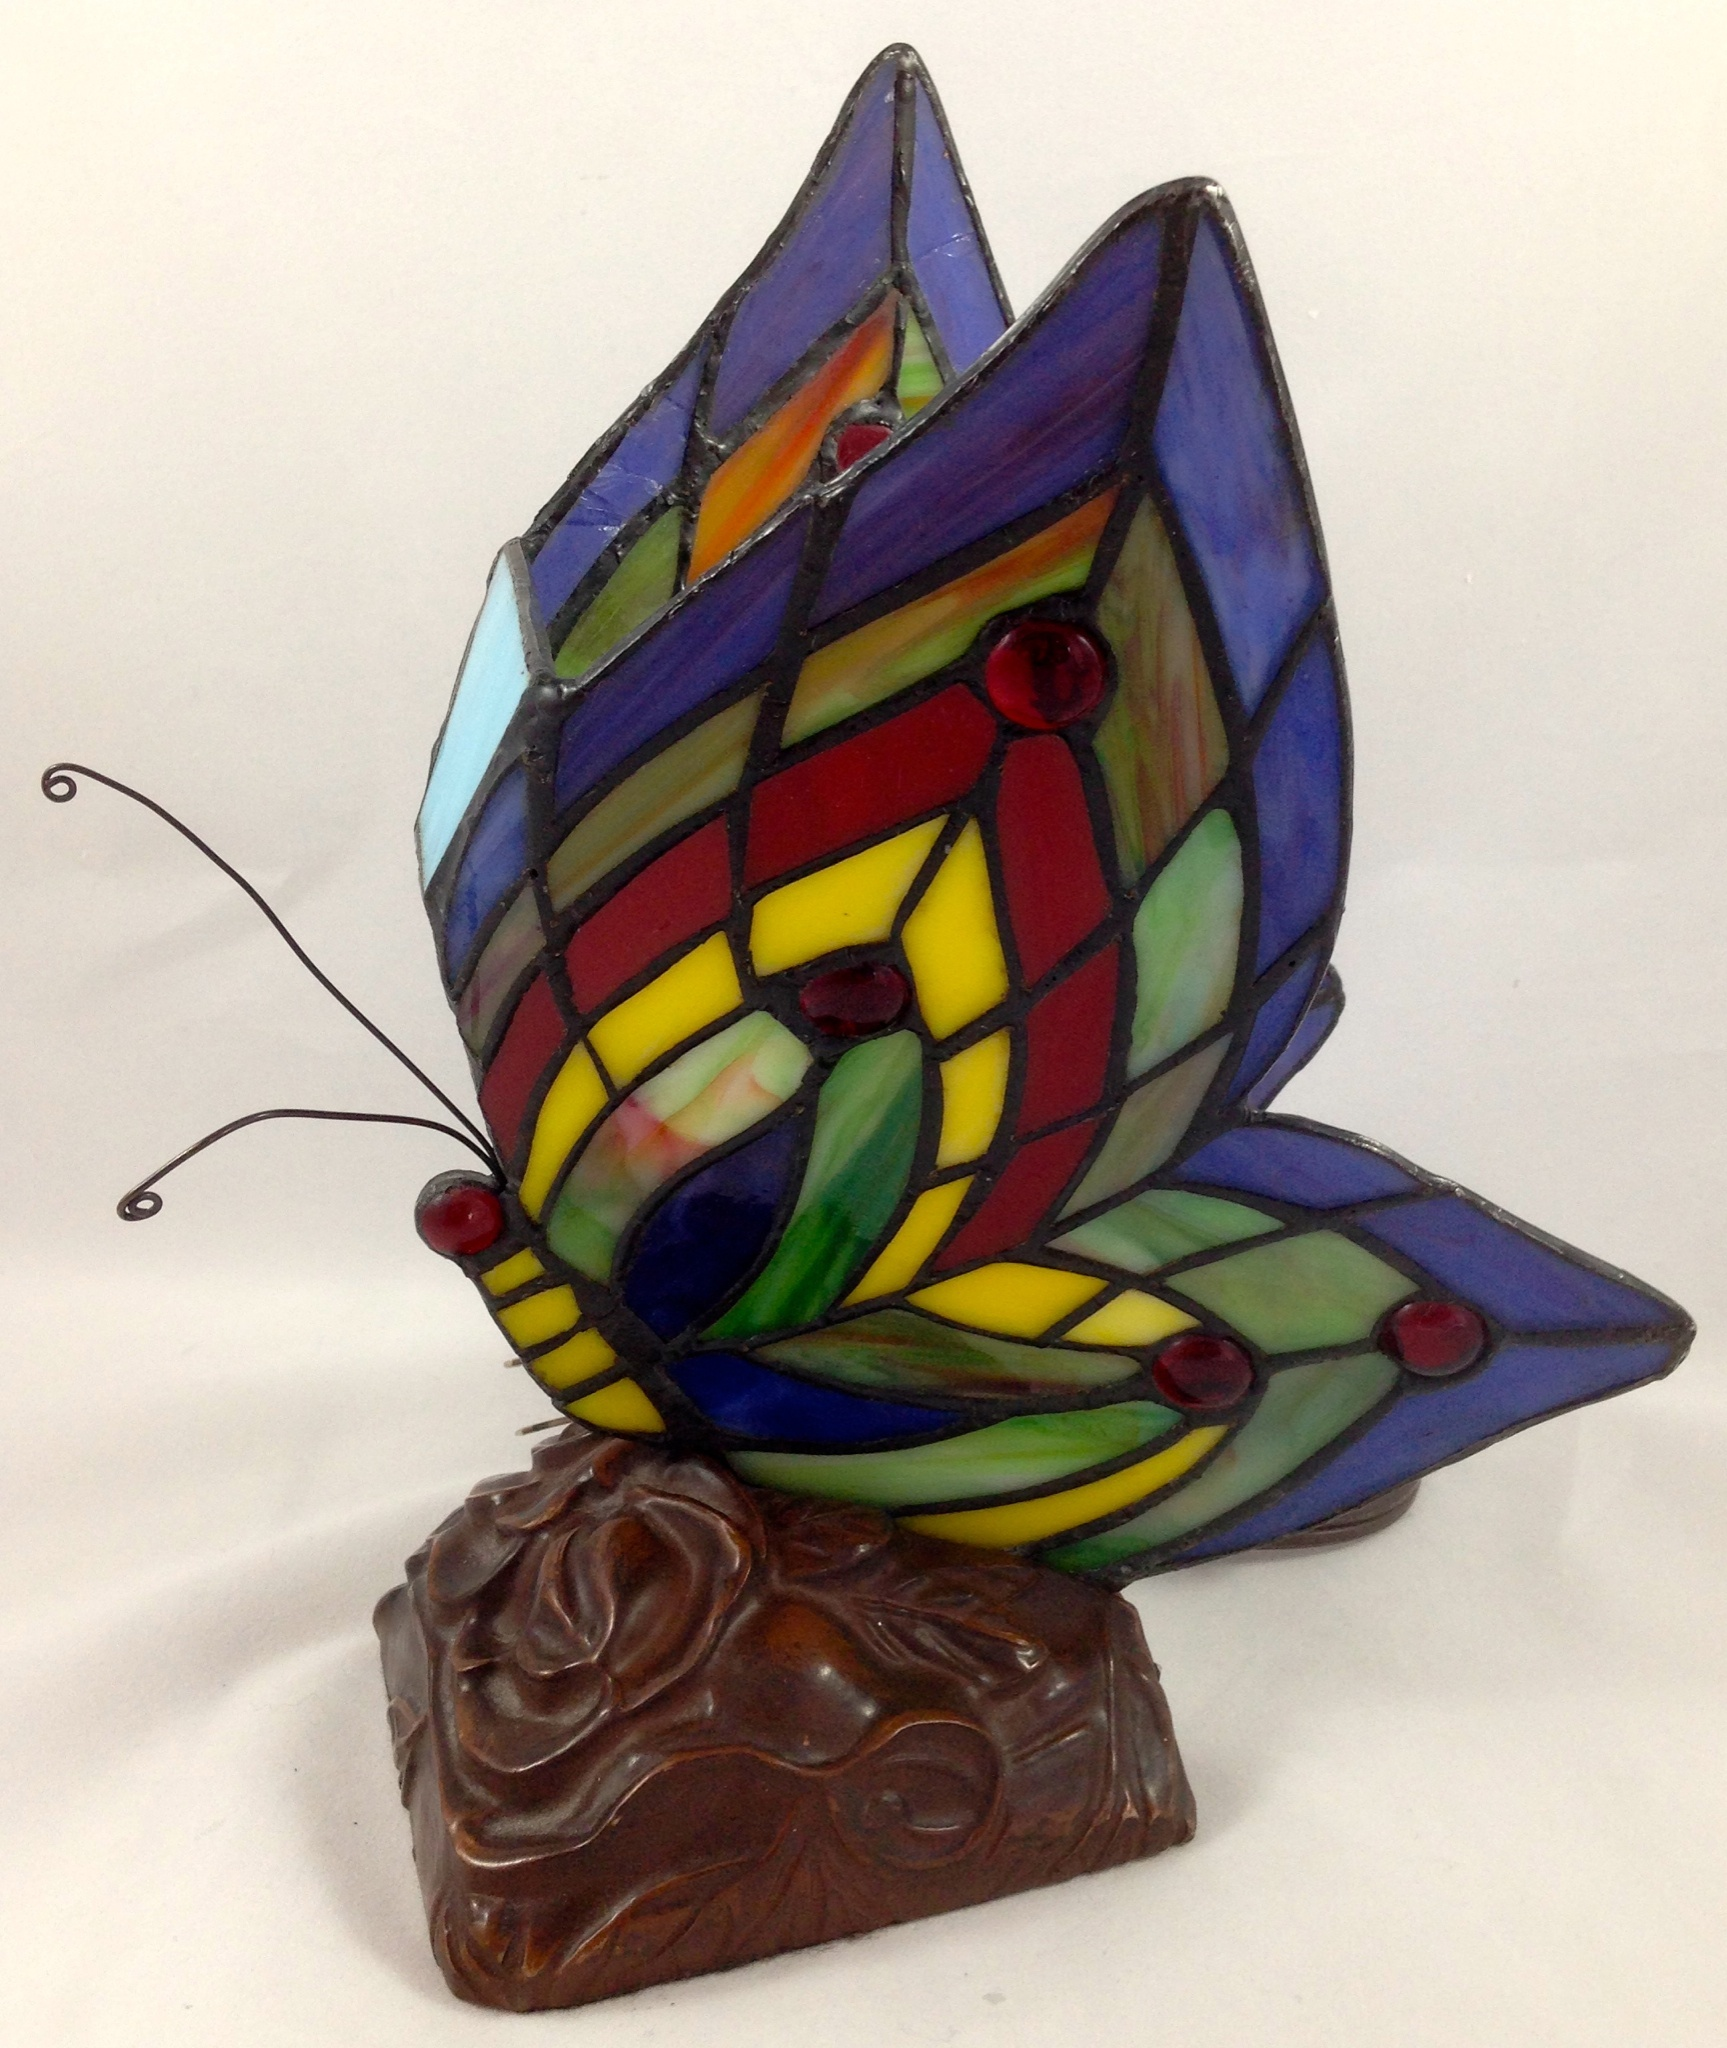 details about tiffany style butterfly lamp stained glass night light. Black Bedroom Furniture Sets. Home Design Ideas